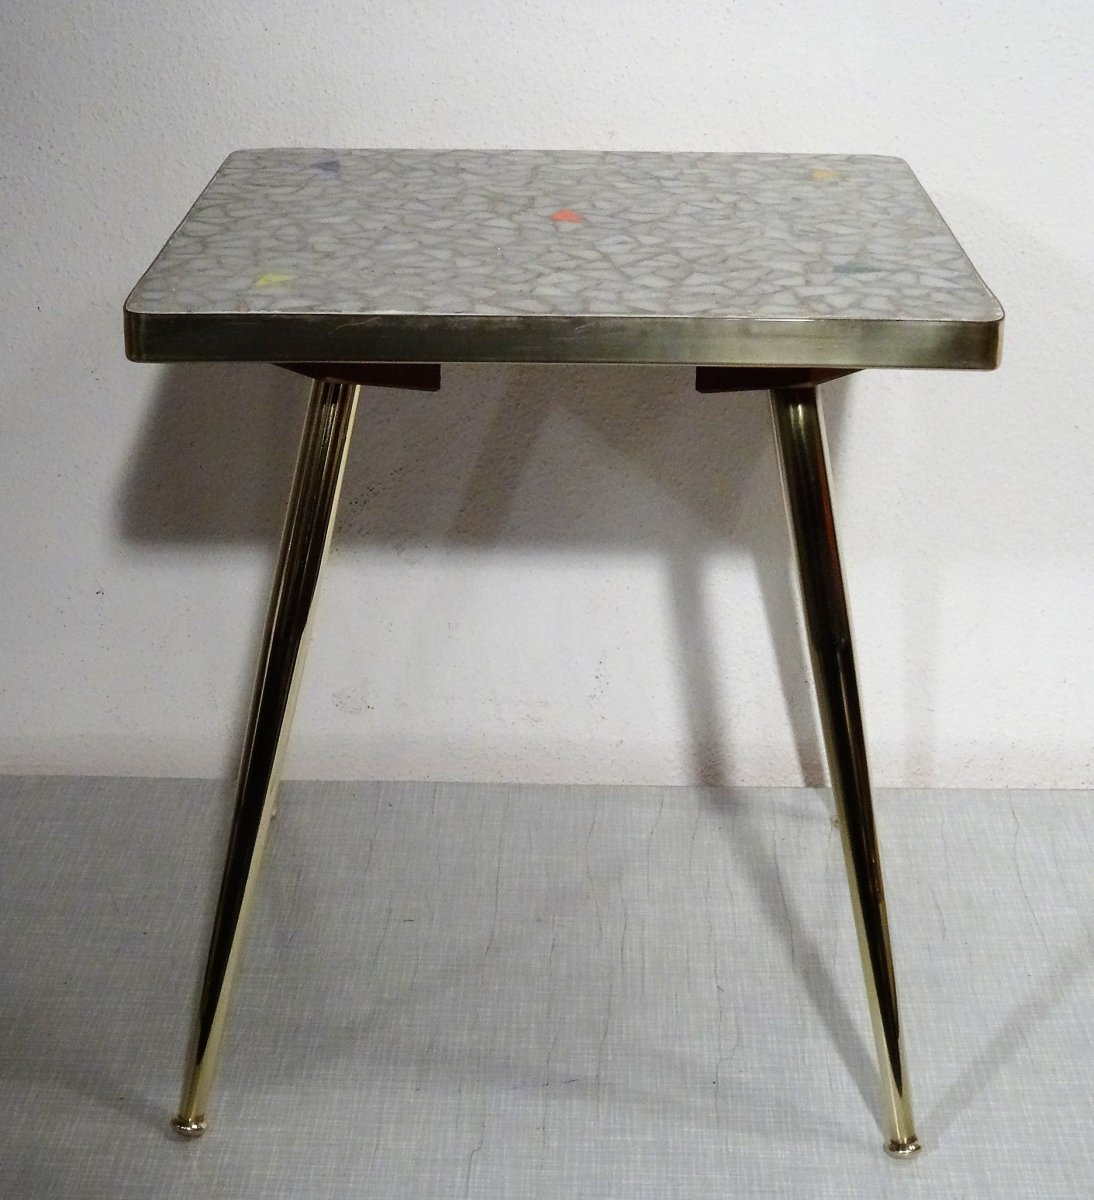 rockabilly shabby chic kl mosaic brass leaning flowers table stool 50er ebay. Black Bedroom Furniture Sets. Home Design Ideas